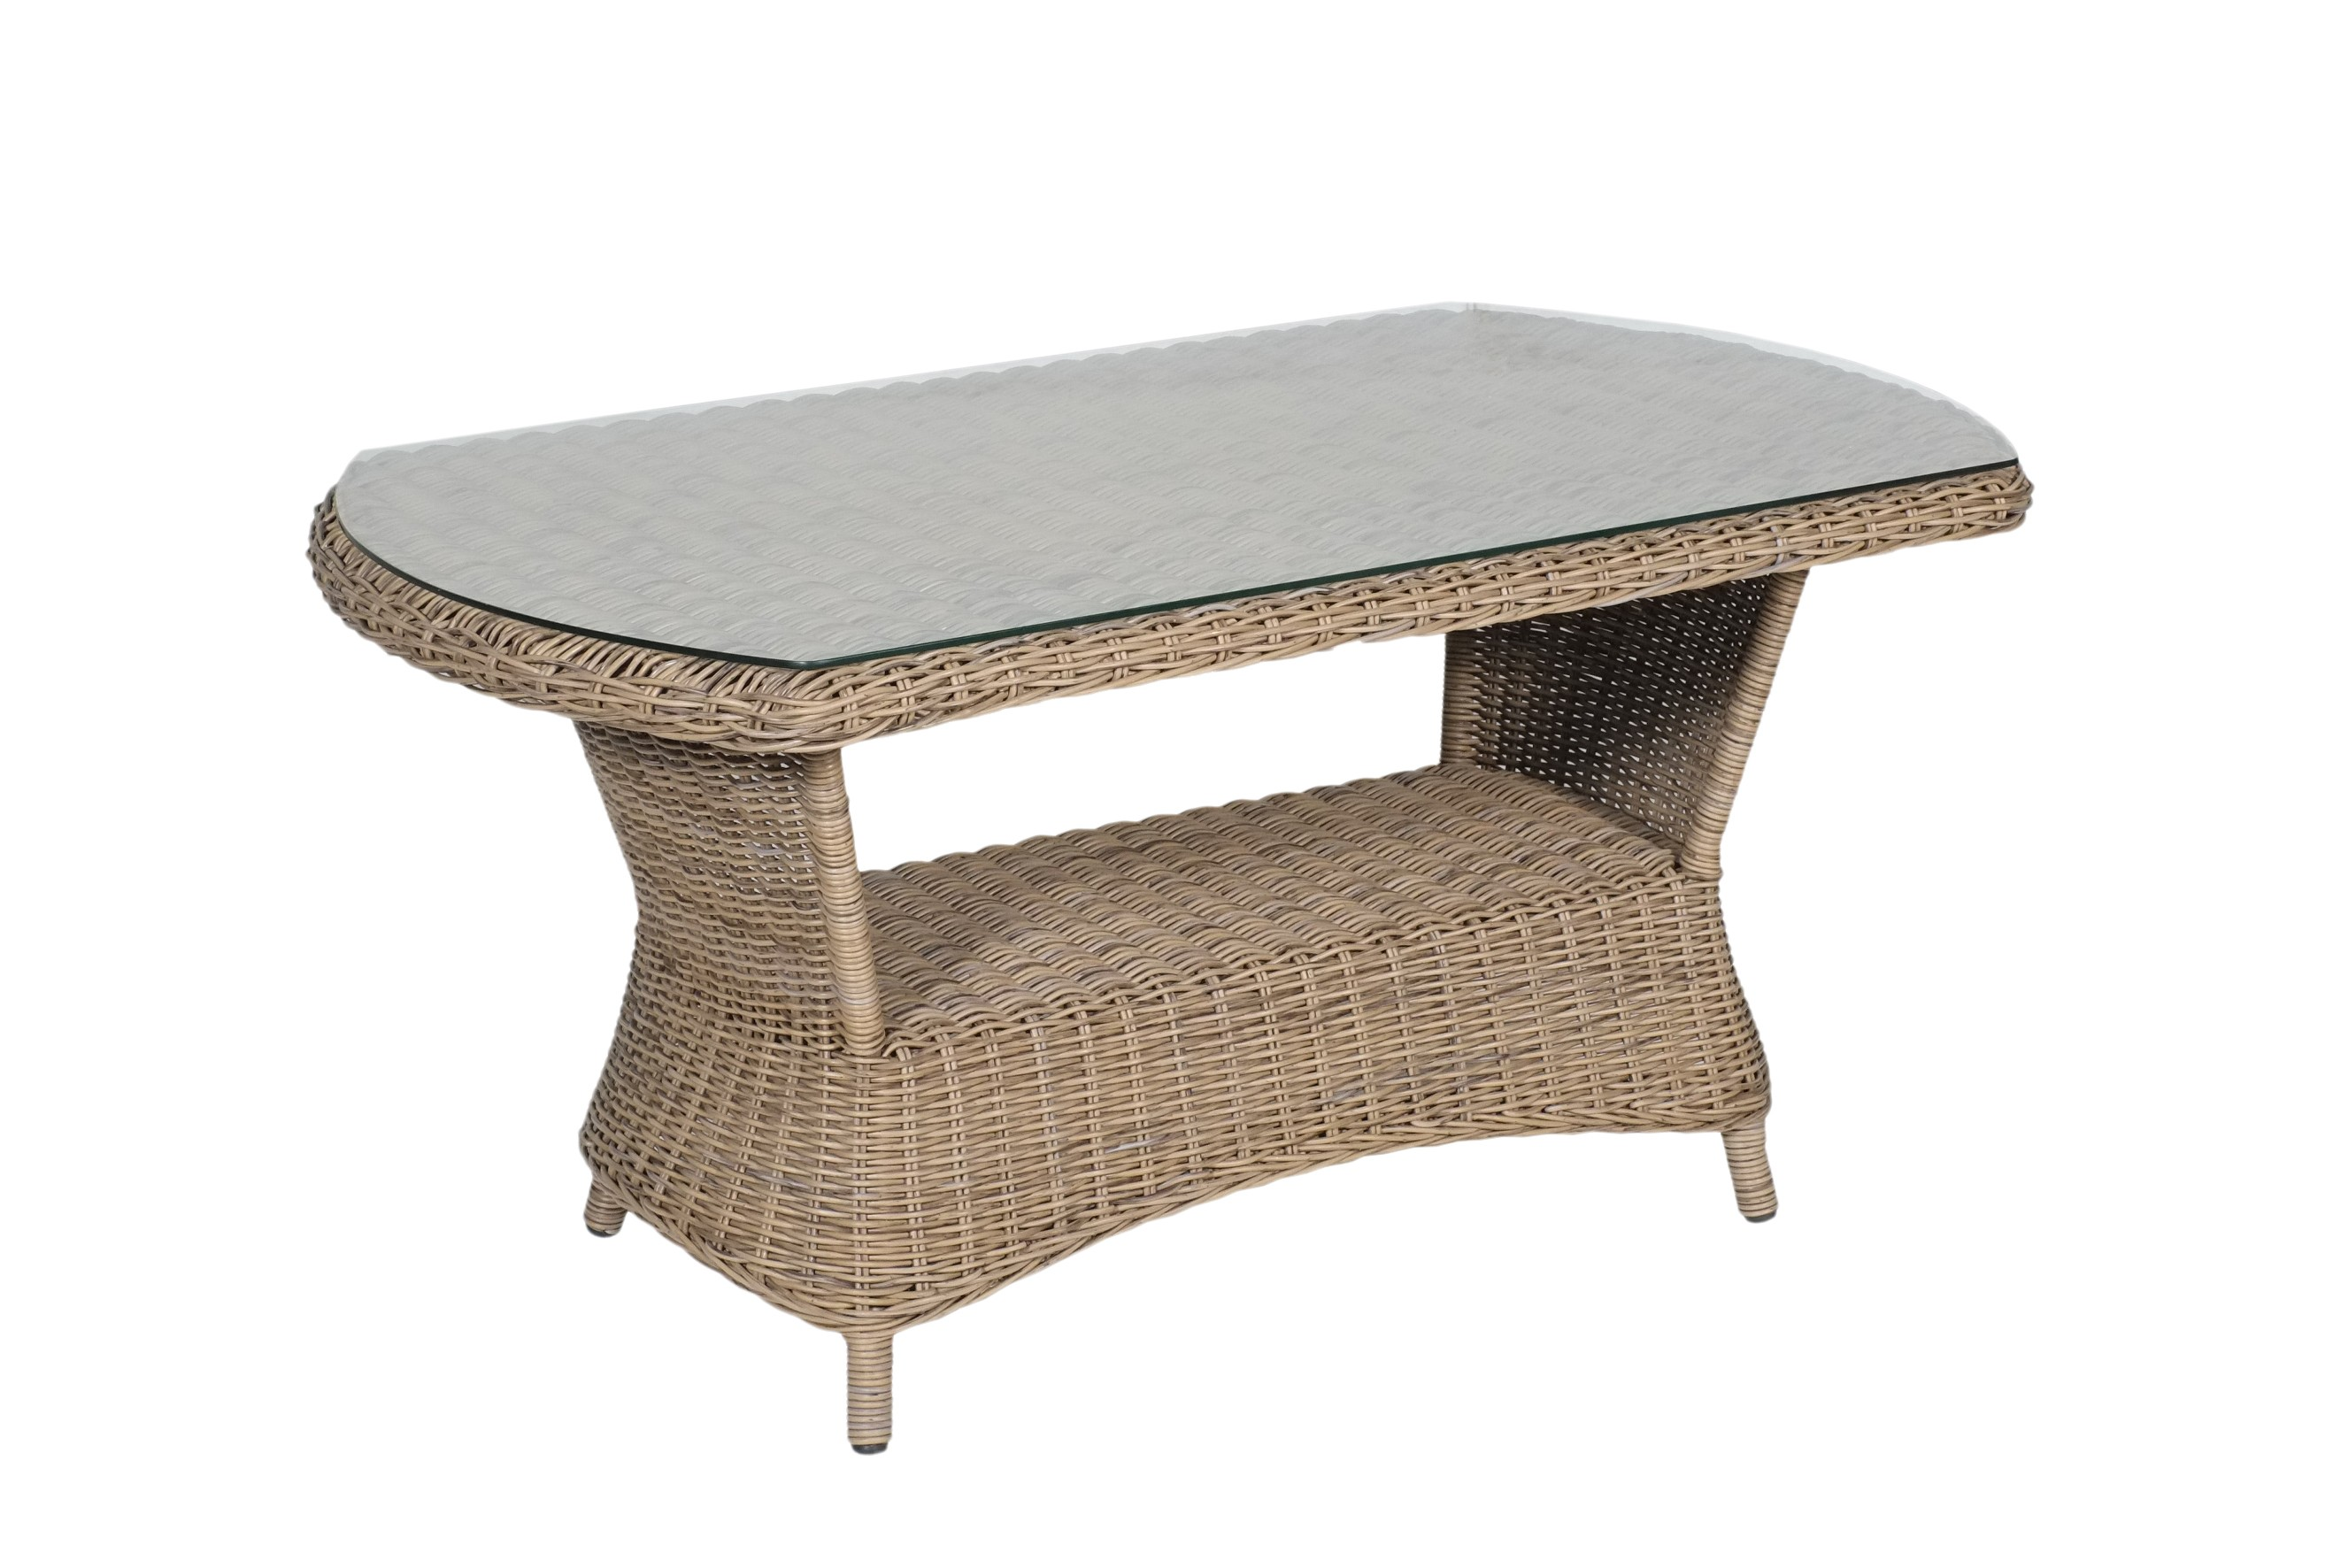 Newport Boat Shaped Coffee Table with 5mm Temmpered Glass ...